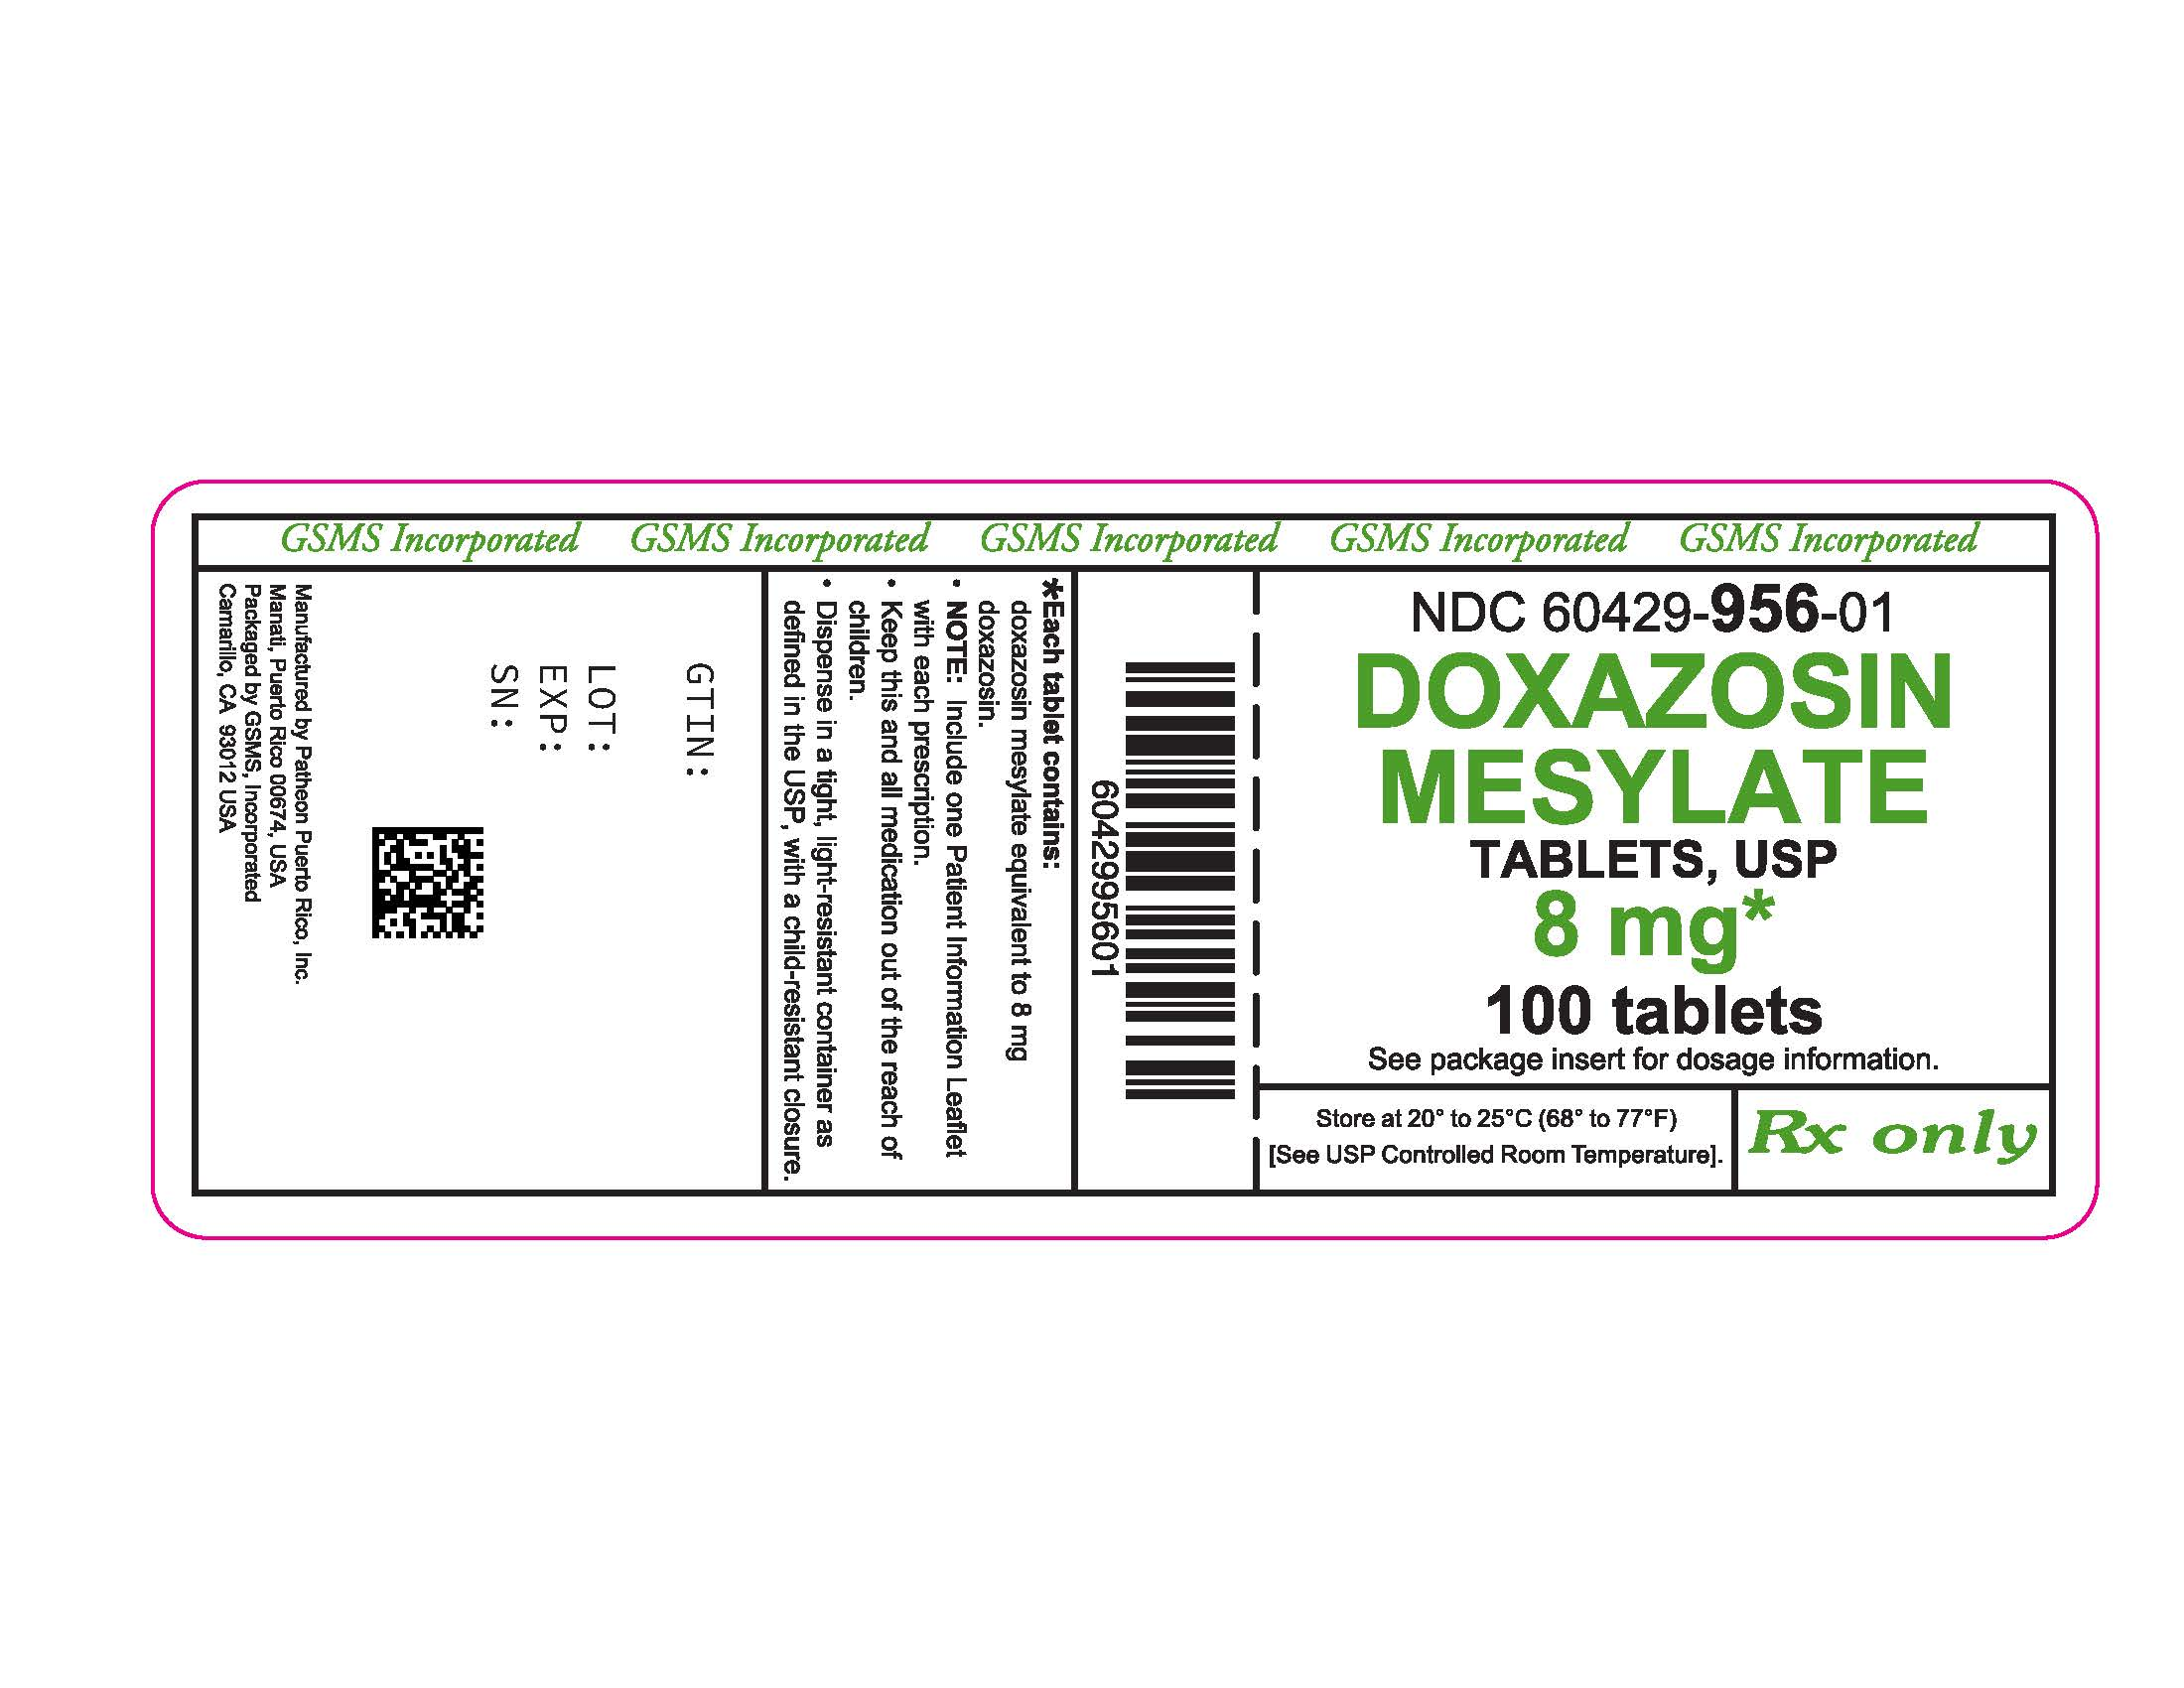 60429-956-01LB - DOXAZOSIN MESYLATE 8 MG TABS - REV JUN 2016 PMG JUN 2016.jpg